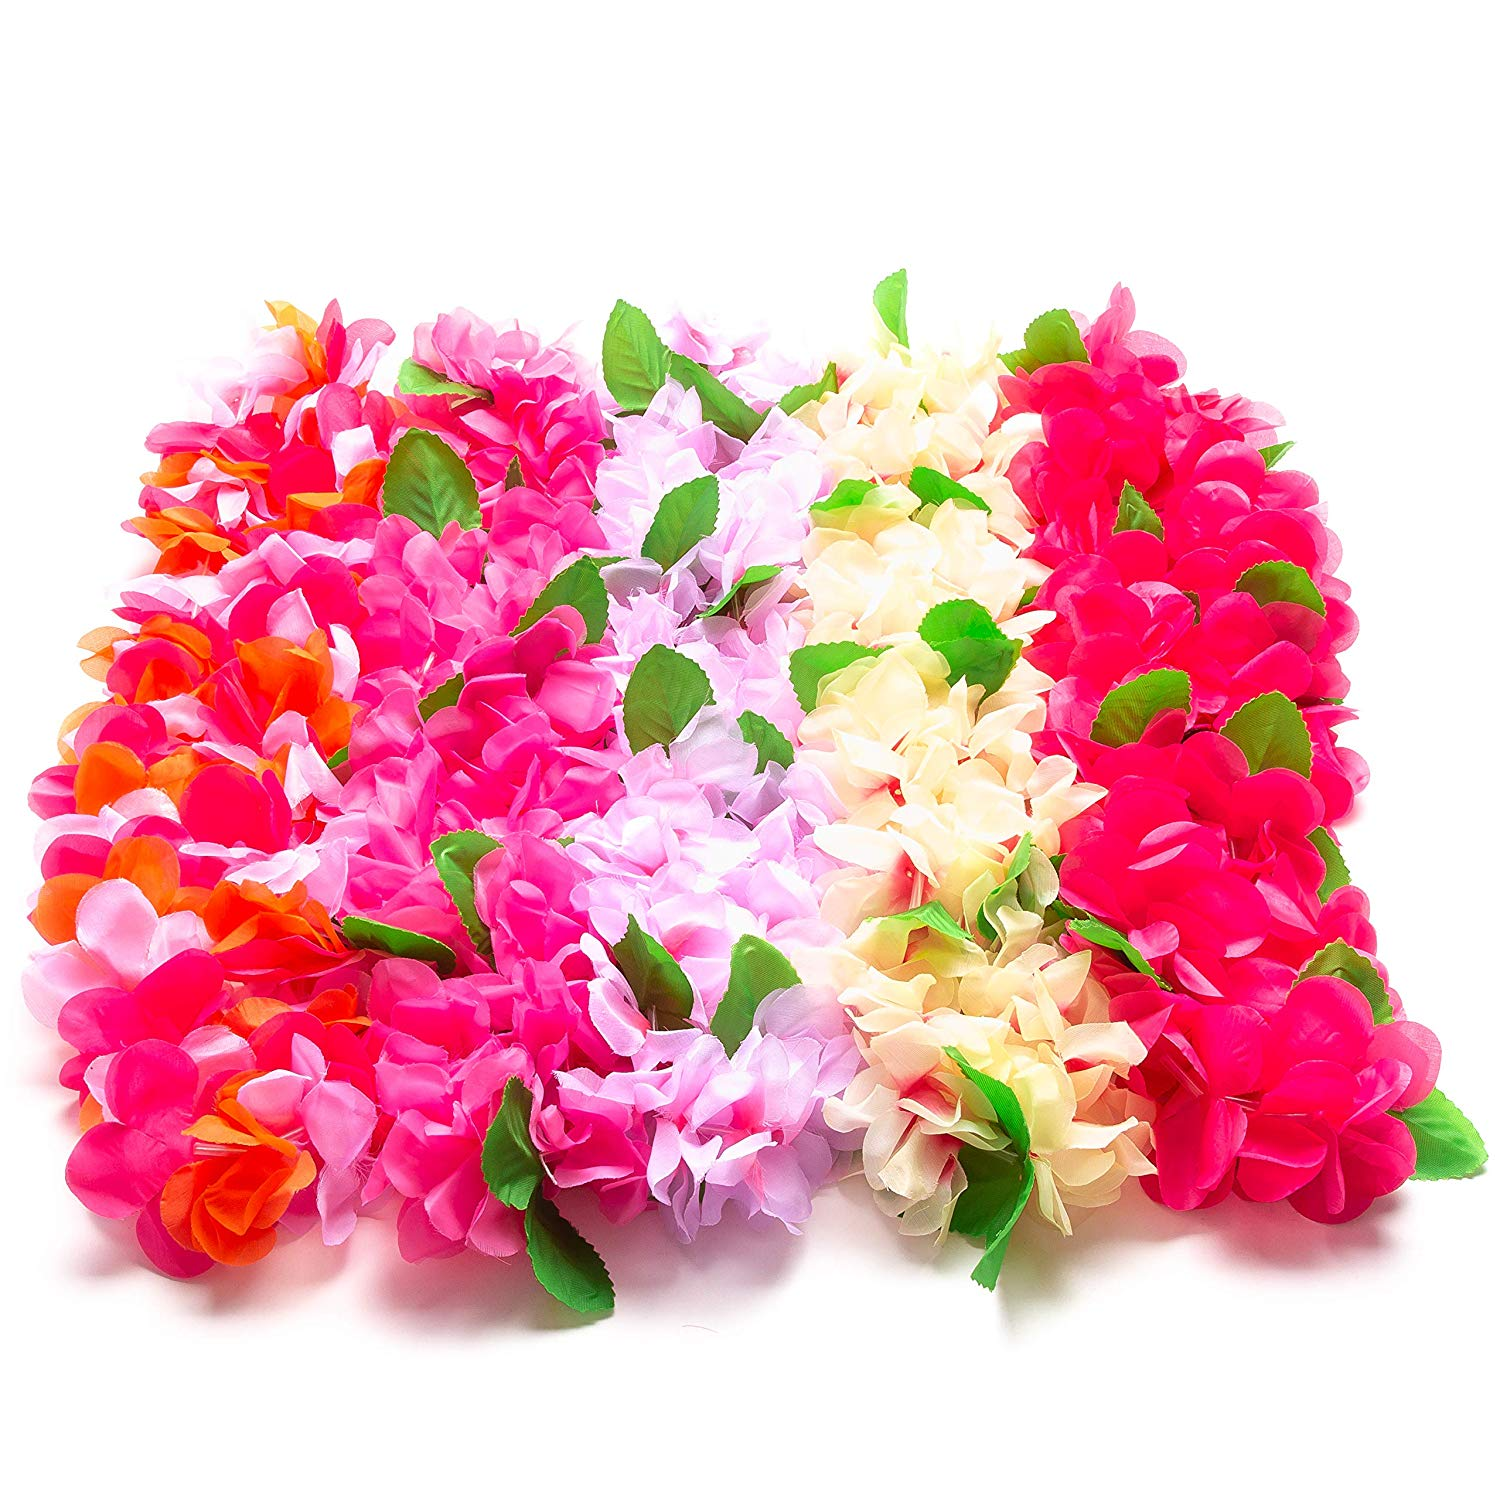 Warner Group 5 Count of The Hawaiian Leis for Luau Party, Moana Party, Tropical Hawaiian Party Decorations and Party Supplies Beach Birthday Lei Tiki Theme